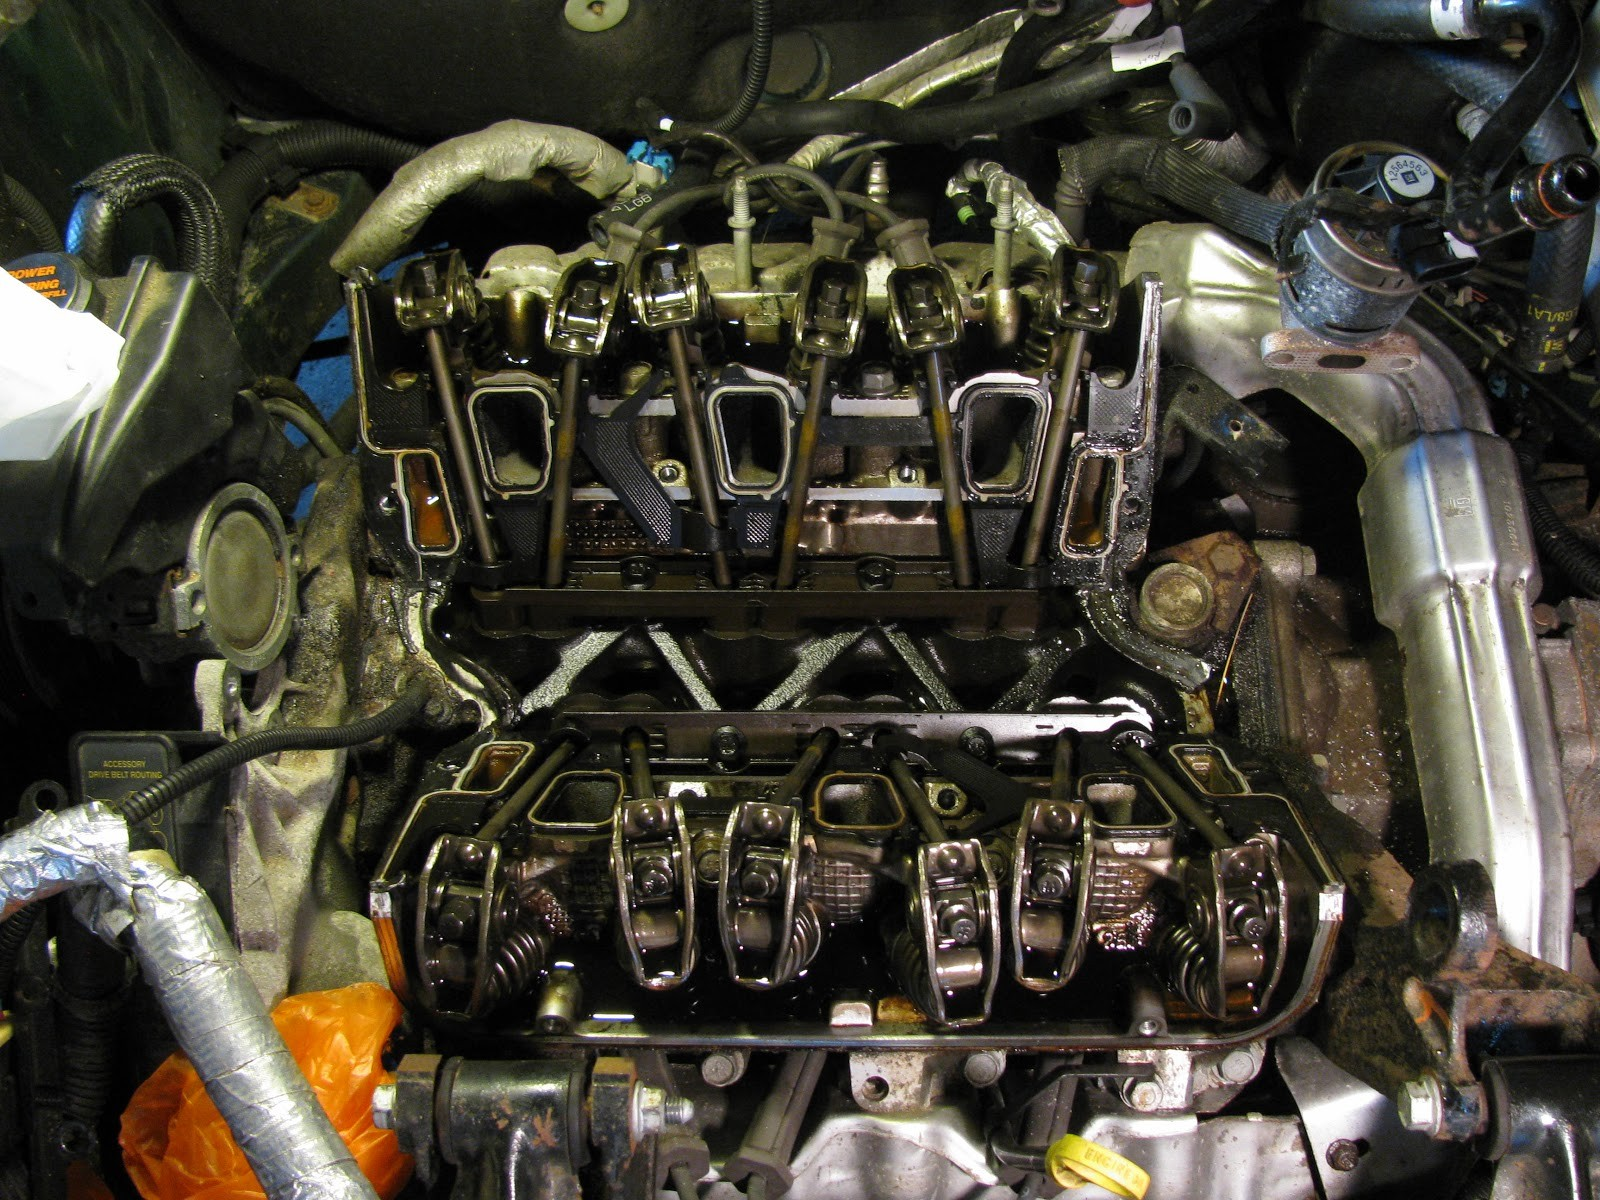 Show Me Tell Me Engine Diagram the original Mechanic 3 1l Engine Gm Replacing Intake Manifold Of Show Me Tell Me Engine Diagram